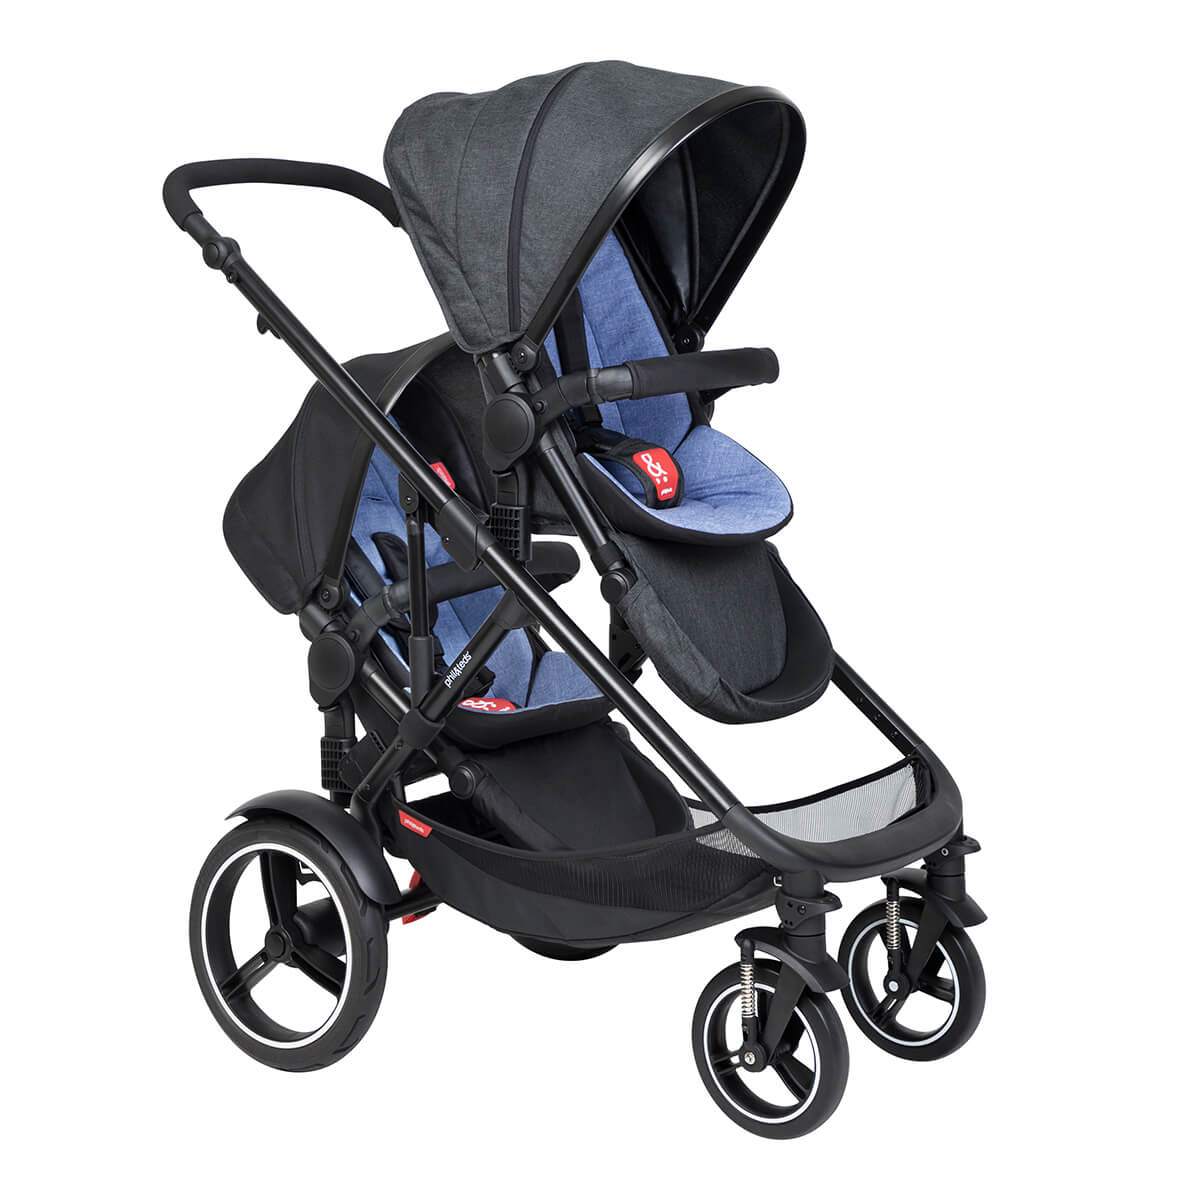 https://cdn.accentuate.io/4363393695797/19118870757429/philteds-voyager-inline-buggy-with-double-kit-in-rear-in-sky-blue-colour-v1633401663255.jpg?1200x1200